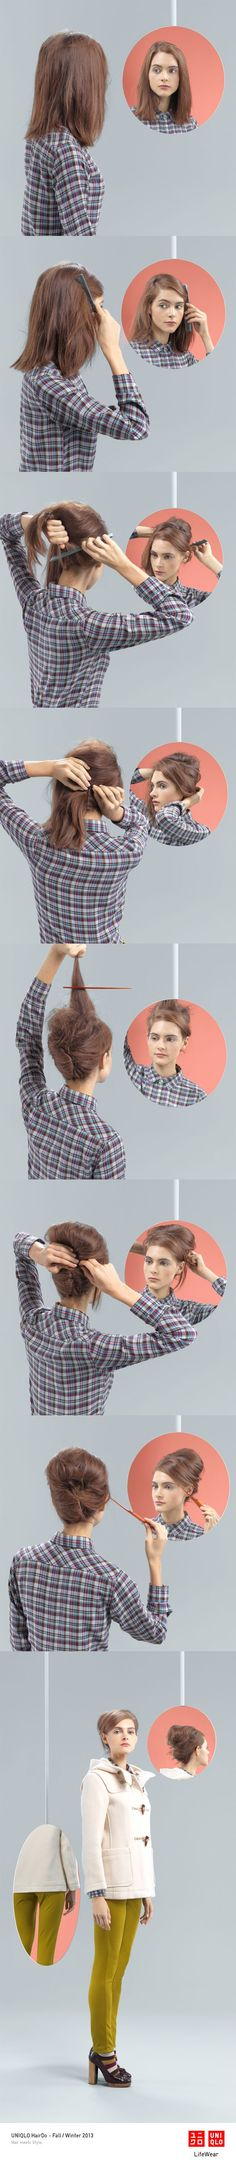 The Side Beehive - A cotton flannel shirt works well with this modern take on a classic hair style. #UpDo #Hair #Hairstyle #DIY #Uniqlo